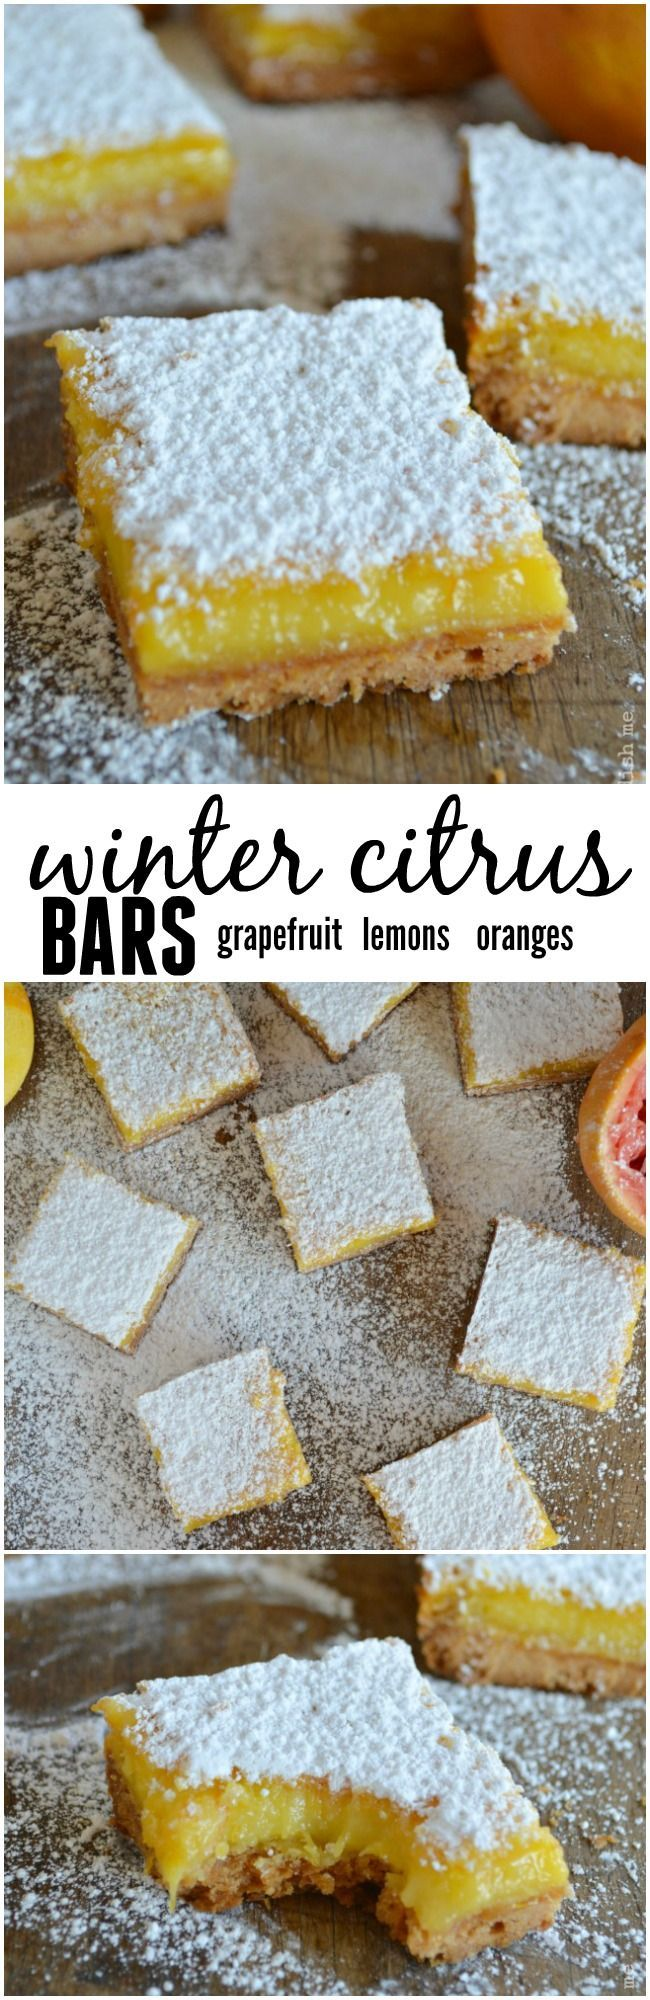 Winter Citrus Bars are sweet and slightly tart with all the flavors of my favorite winter citrus. Grapefruit shines in this recipe with hints of lemon & orange